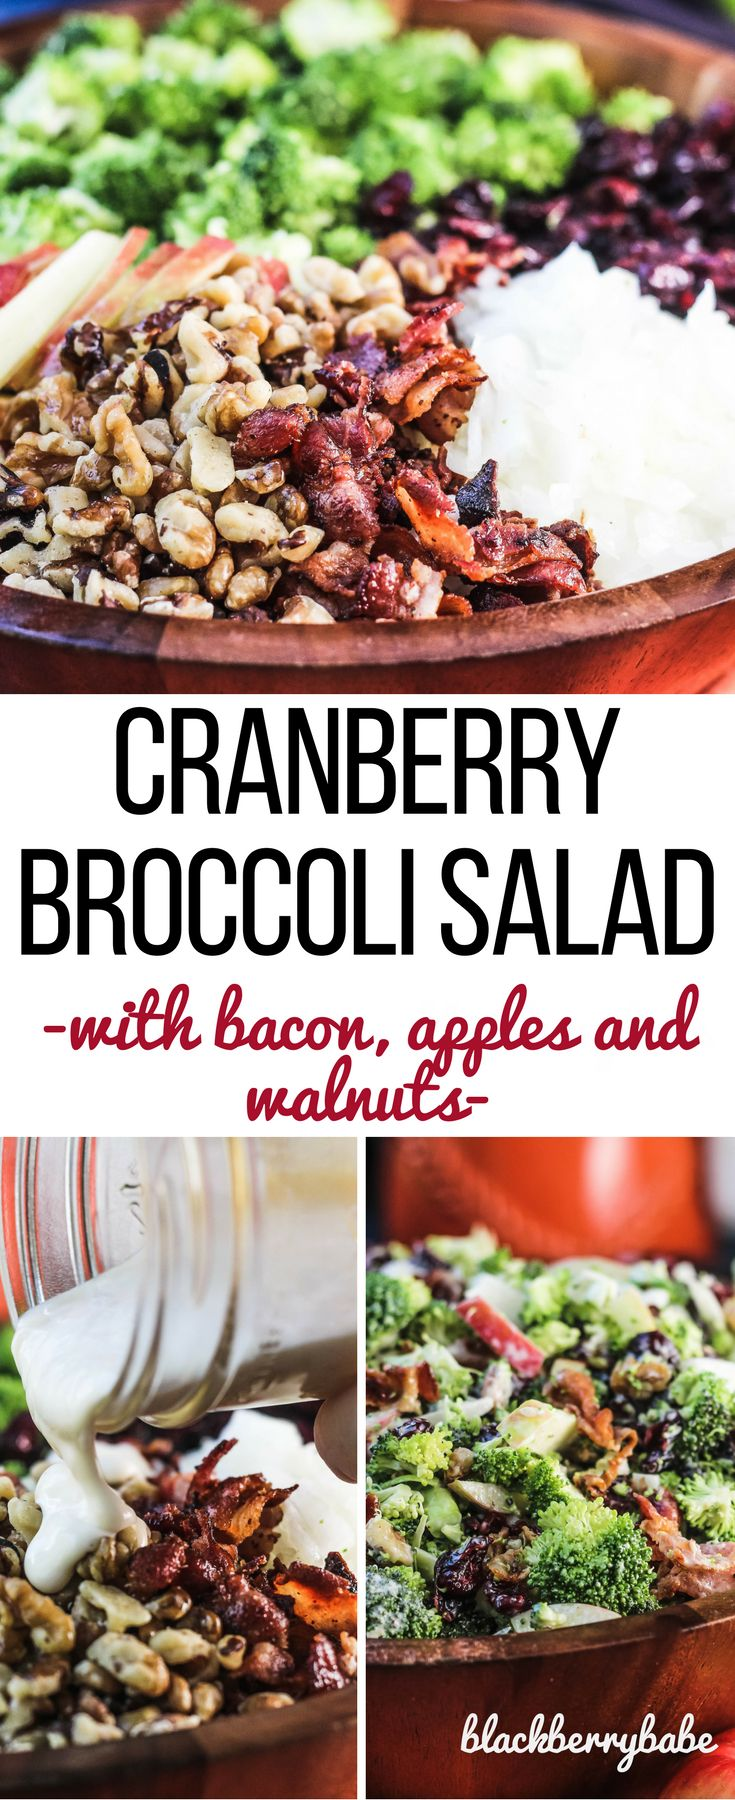 My FAVORITE salad for the holidays! Cranberry Broccoli Salad with Bacon Apples and Walnuts. Tossed in an easy creamy maple dressing! Recipe by www.blackberrybabe.com.